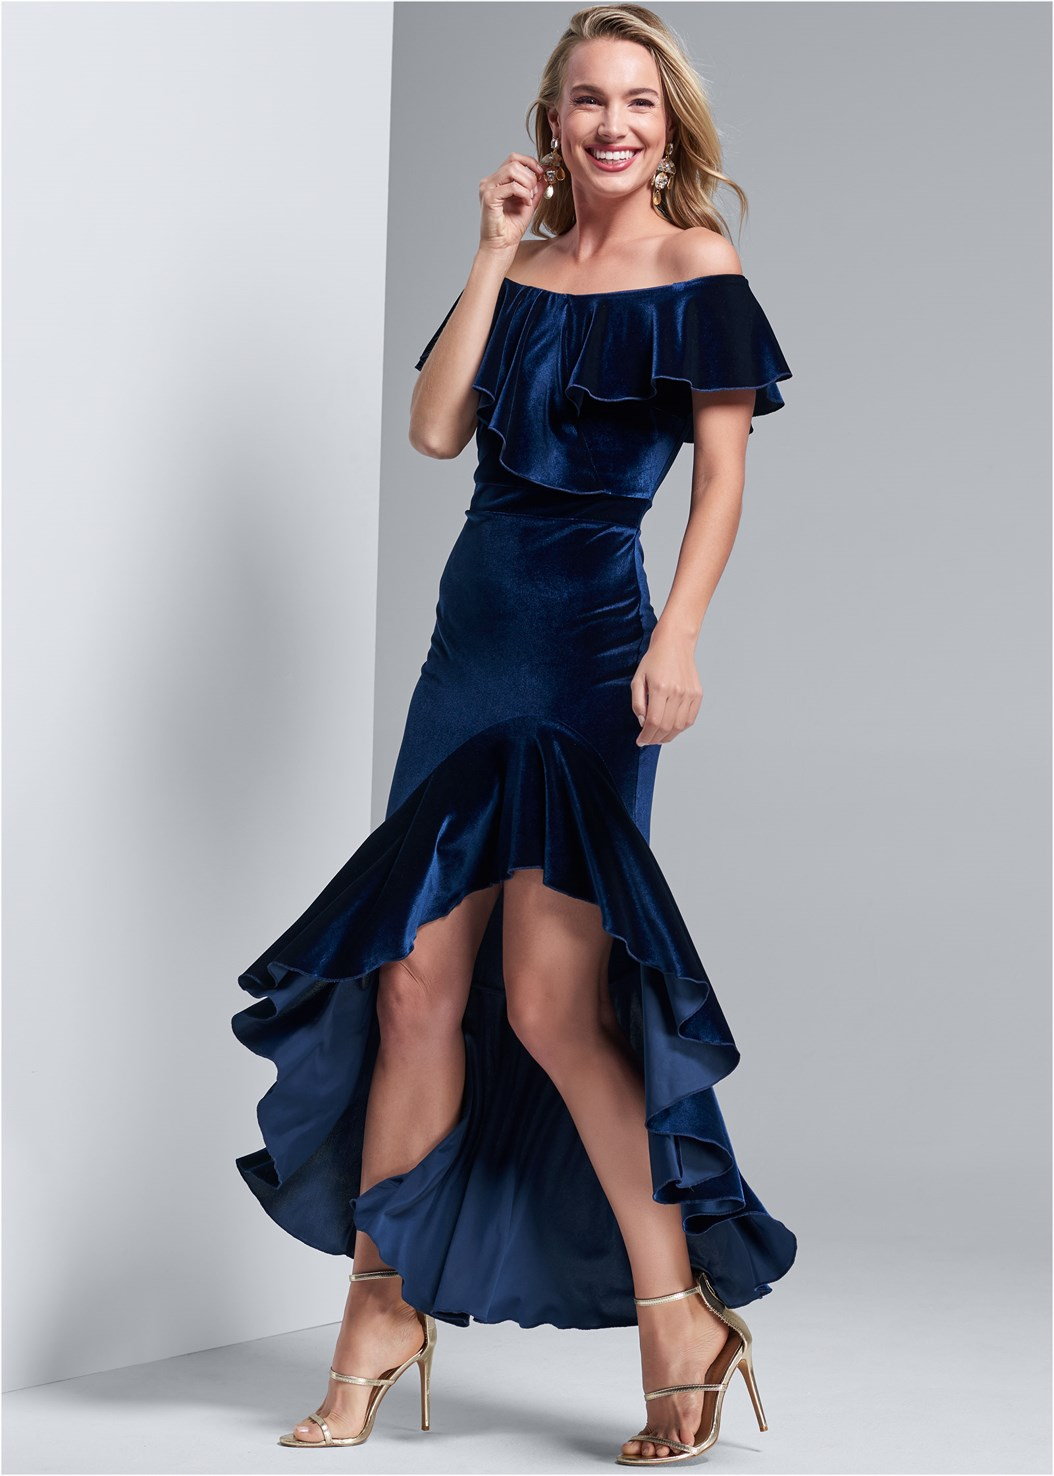 Off Shoulder Ruffle Dress,Everyday You Strapless Bra,High Heel Strappy Sandals